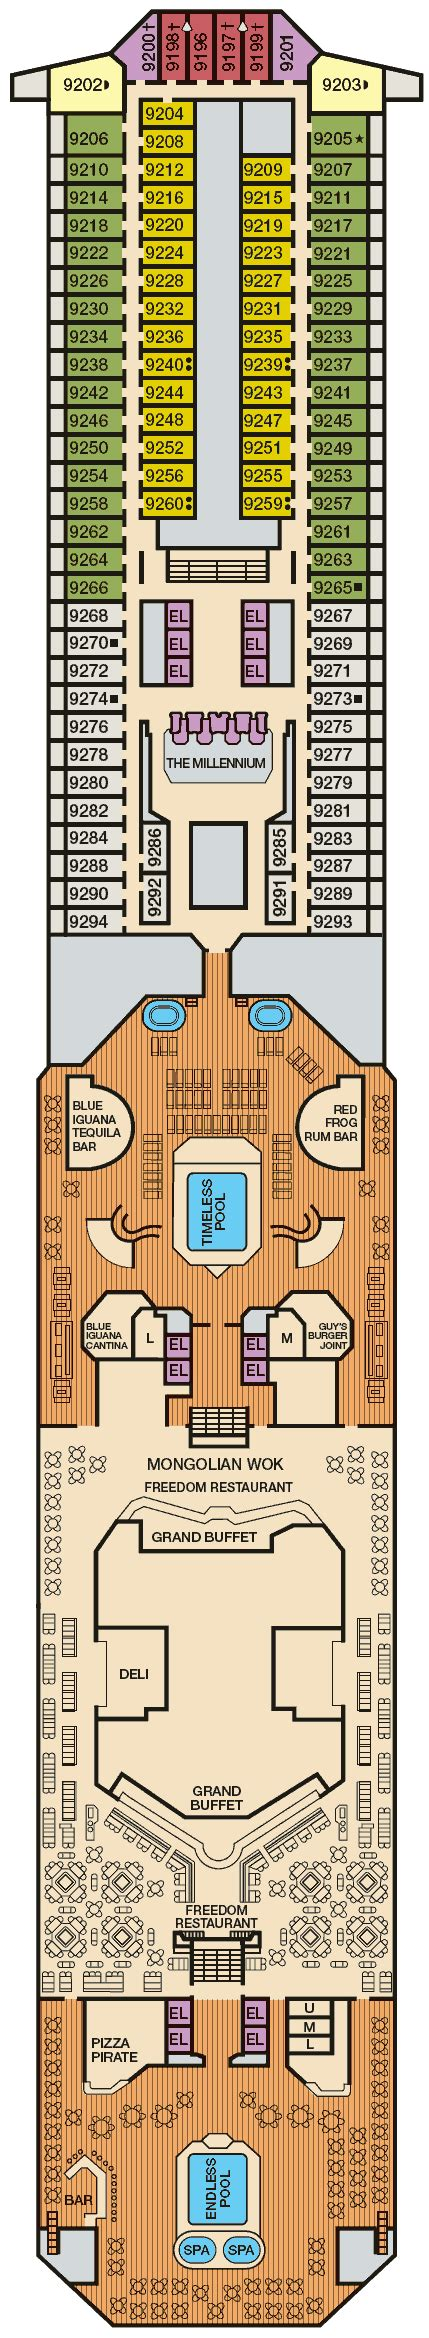 carnival freedom floor plan balcony cabin 9262 on carnival freedom category 8d